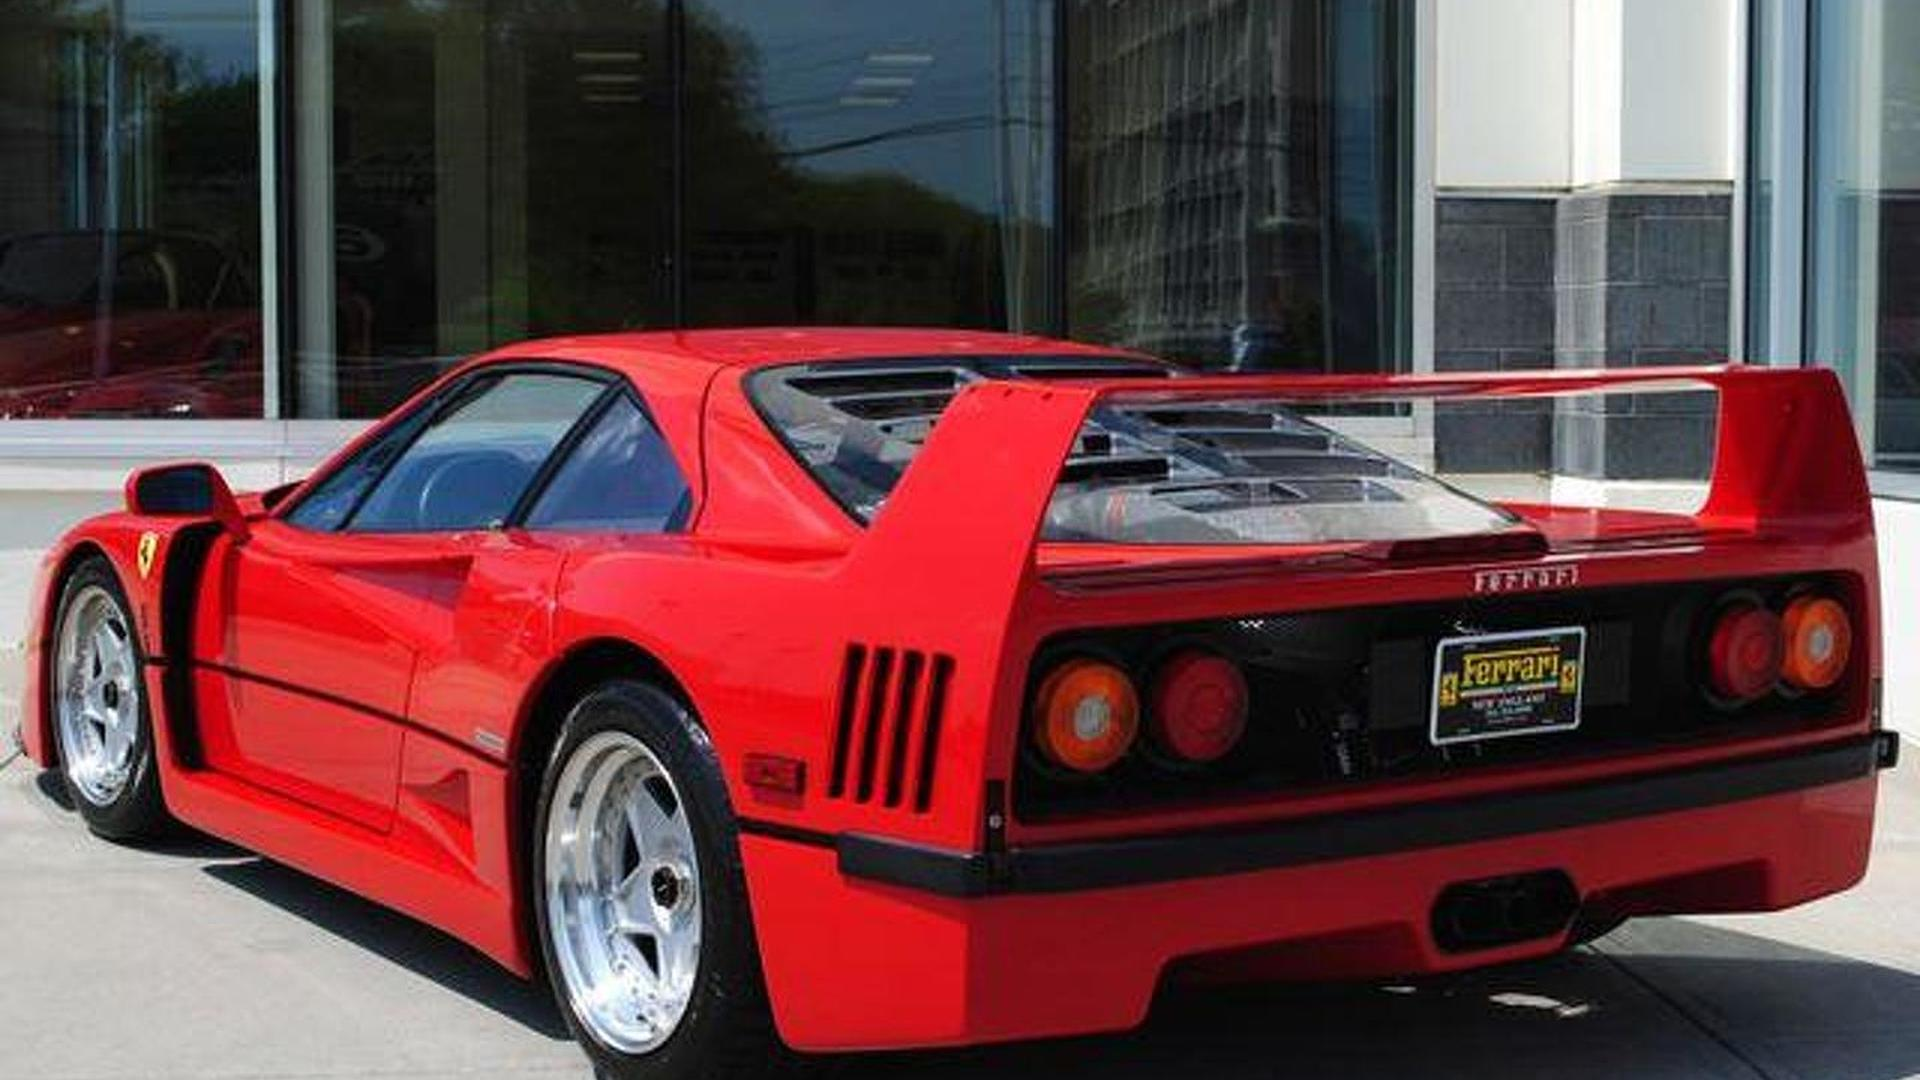 1990 Ferrari F40 1995 F50 And 2003 Enzo Available On Sale For 6 2m Usd Not Sold Separately